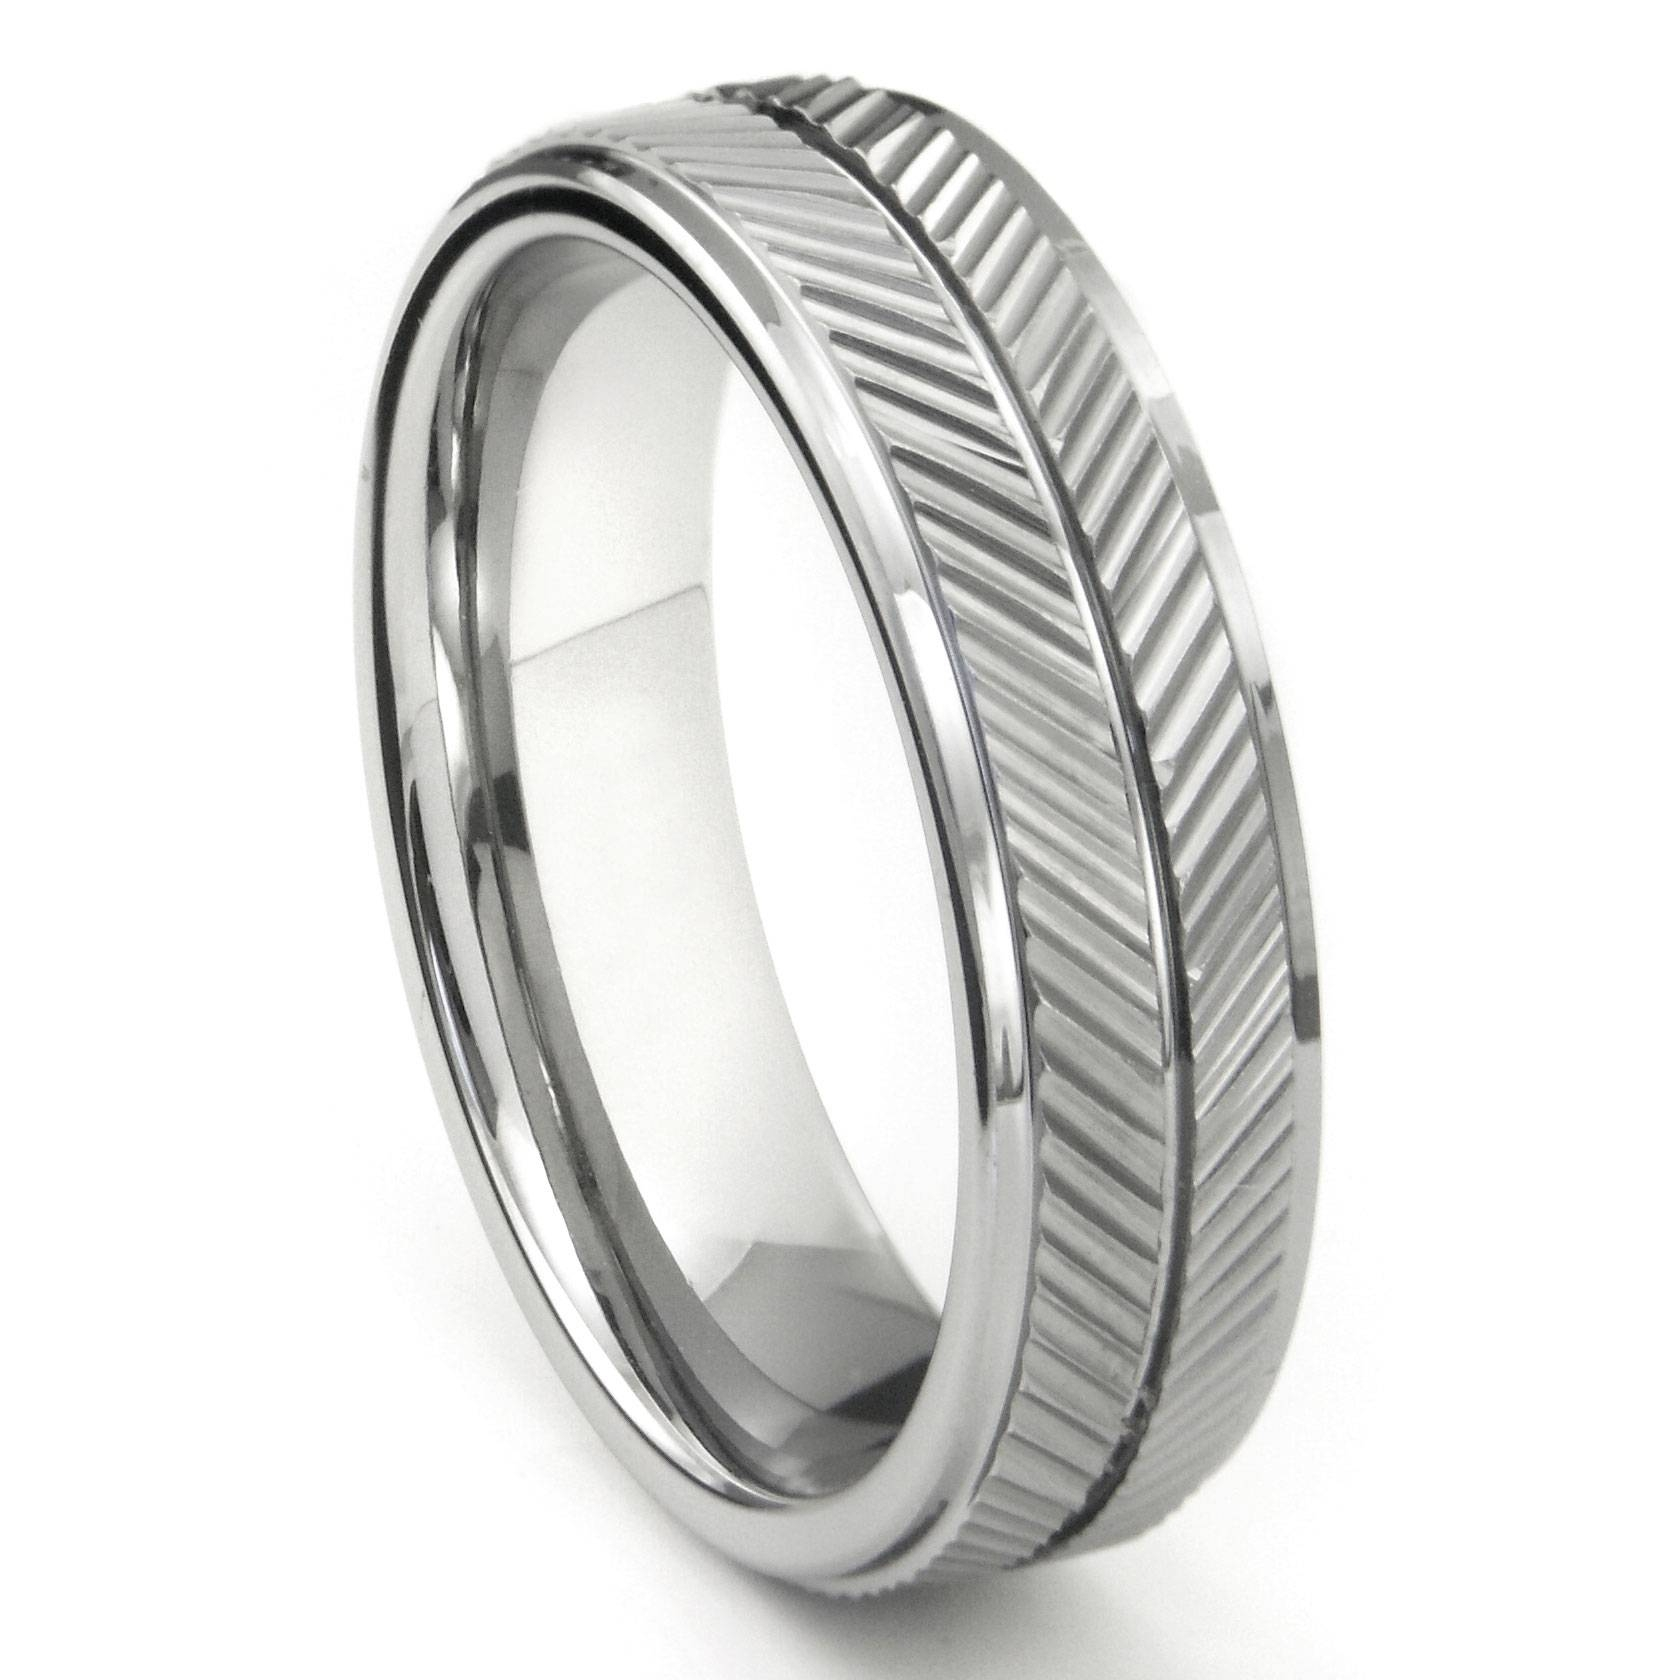 Tungsten Carbide 7Mm Diamond Cut Chevron Wedding Band Ring Pertaining To Chevron Wedding Bands (View 14 of 15)